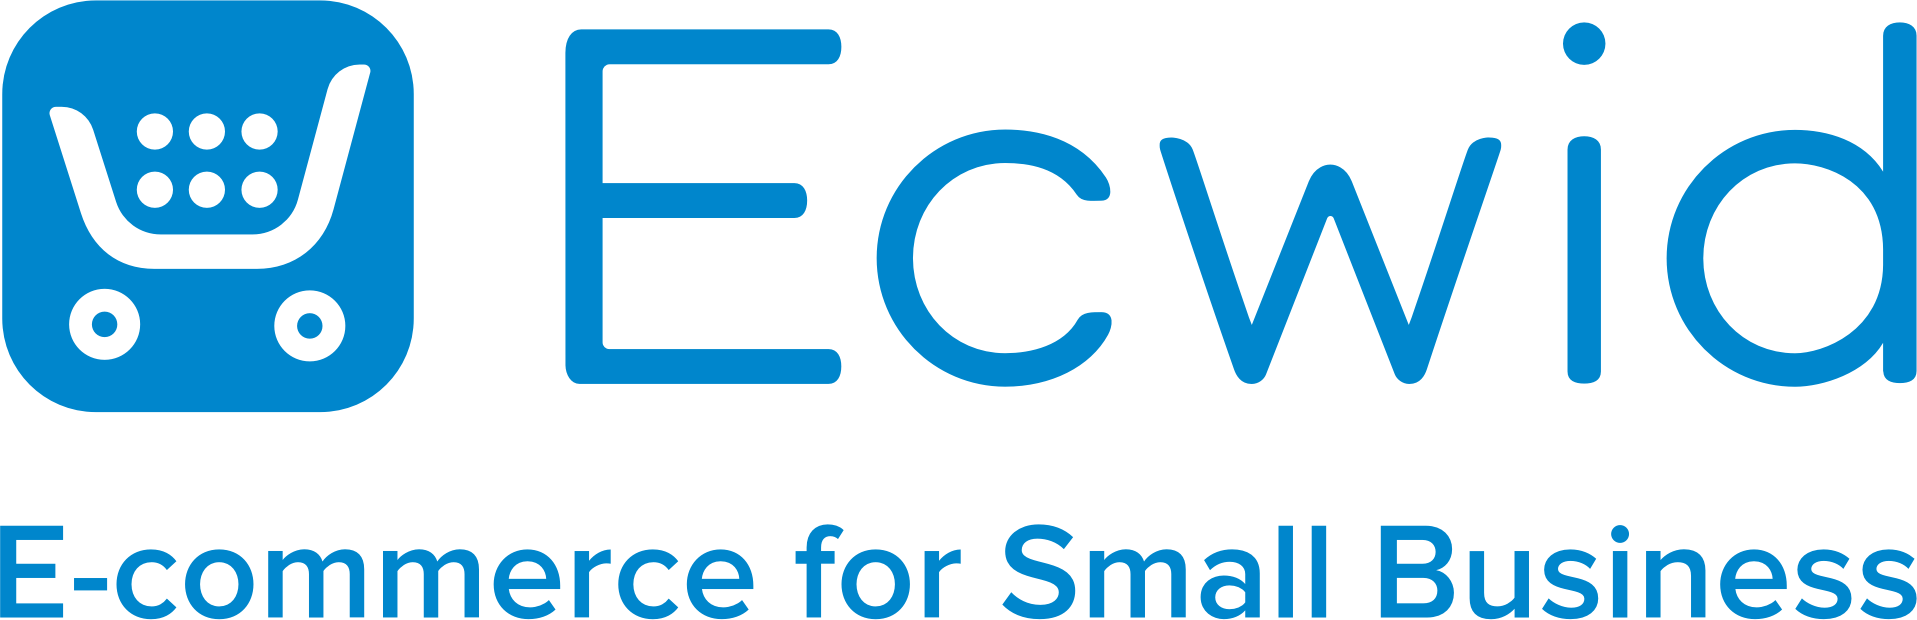 Resello-Ecwid-online-selling-logo